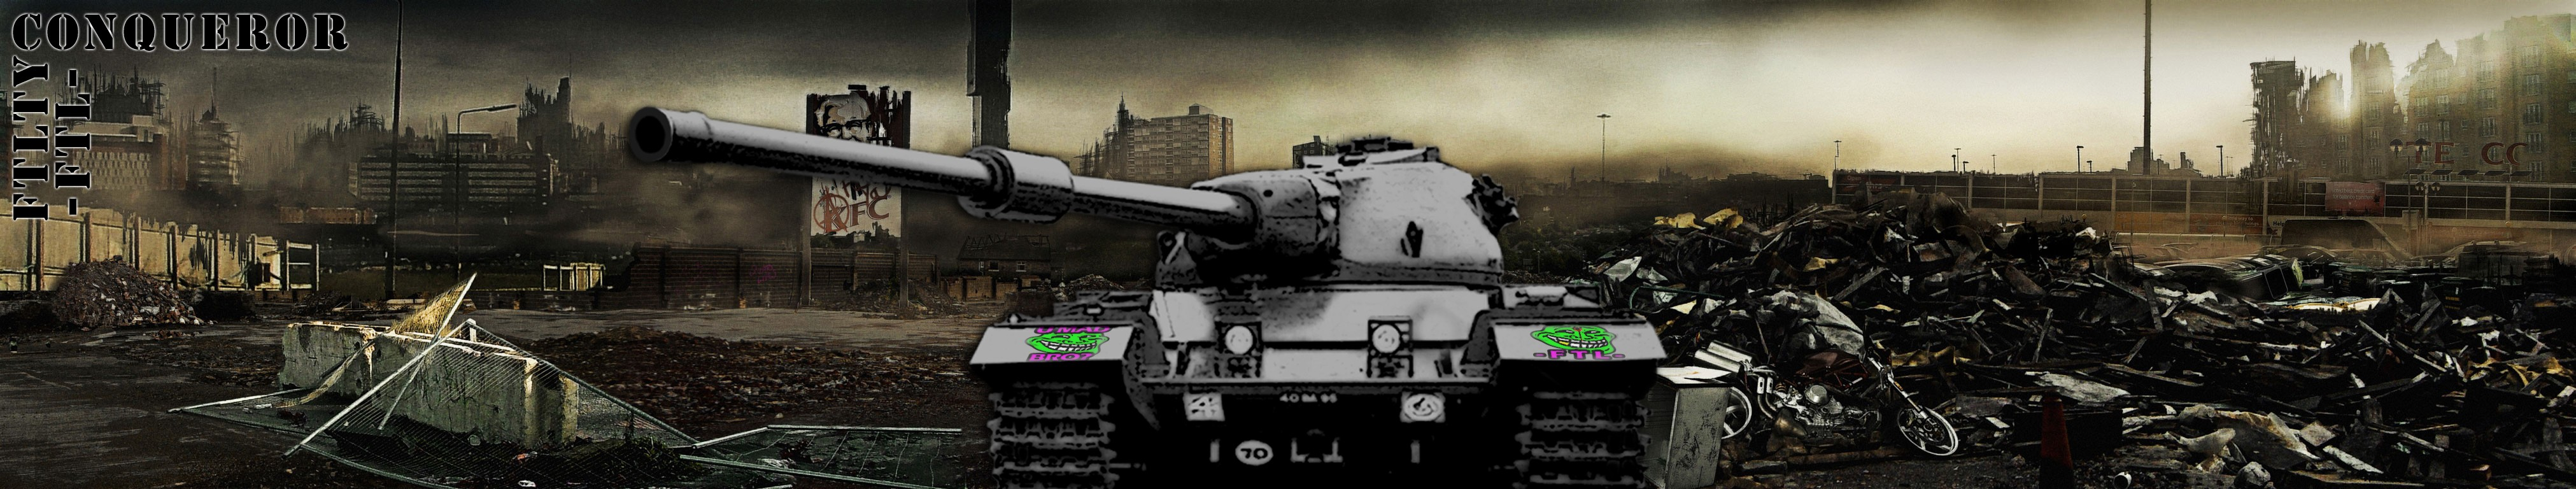 CONQUEROR HEAVY TANK FTL FTLTY CLAN WORLD OF TANKS FATALITY FATAL1TY